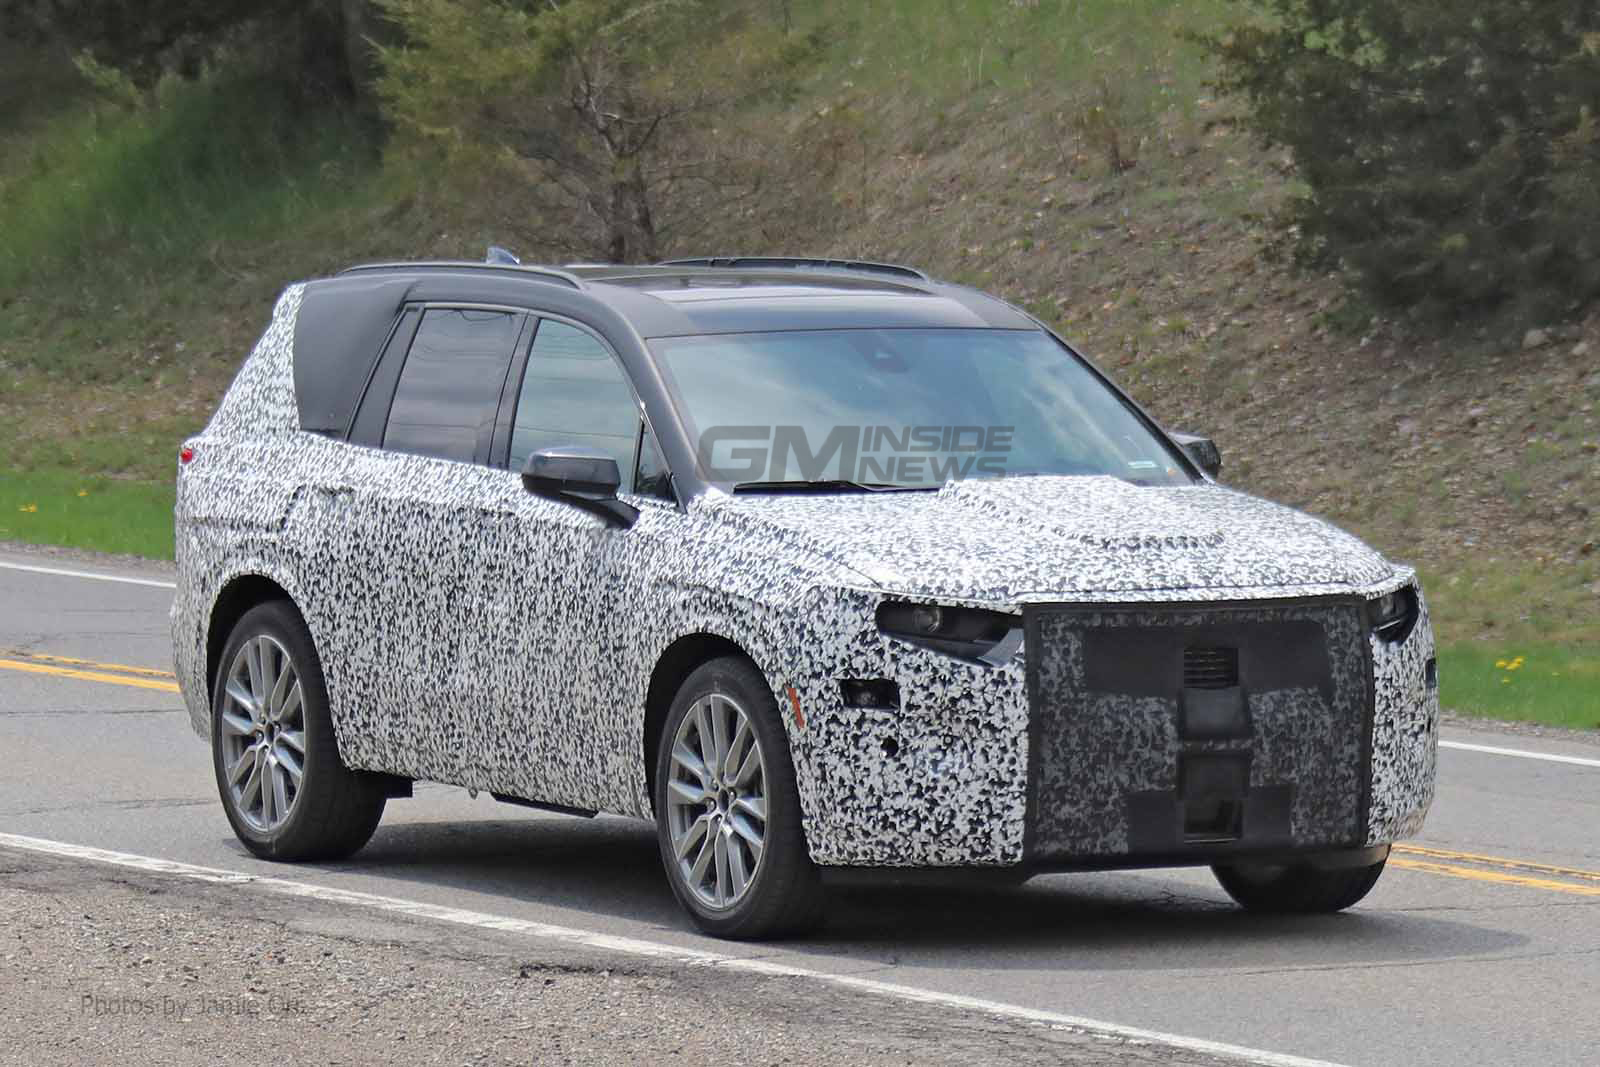 2020 Cadillac XT6 Spied Doing Another Round of Testing ...